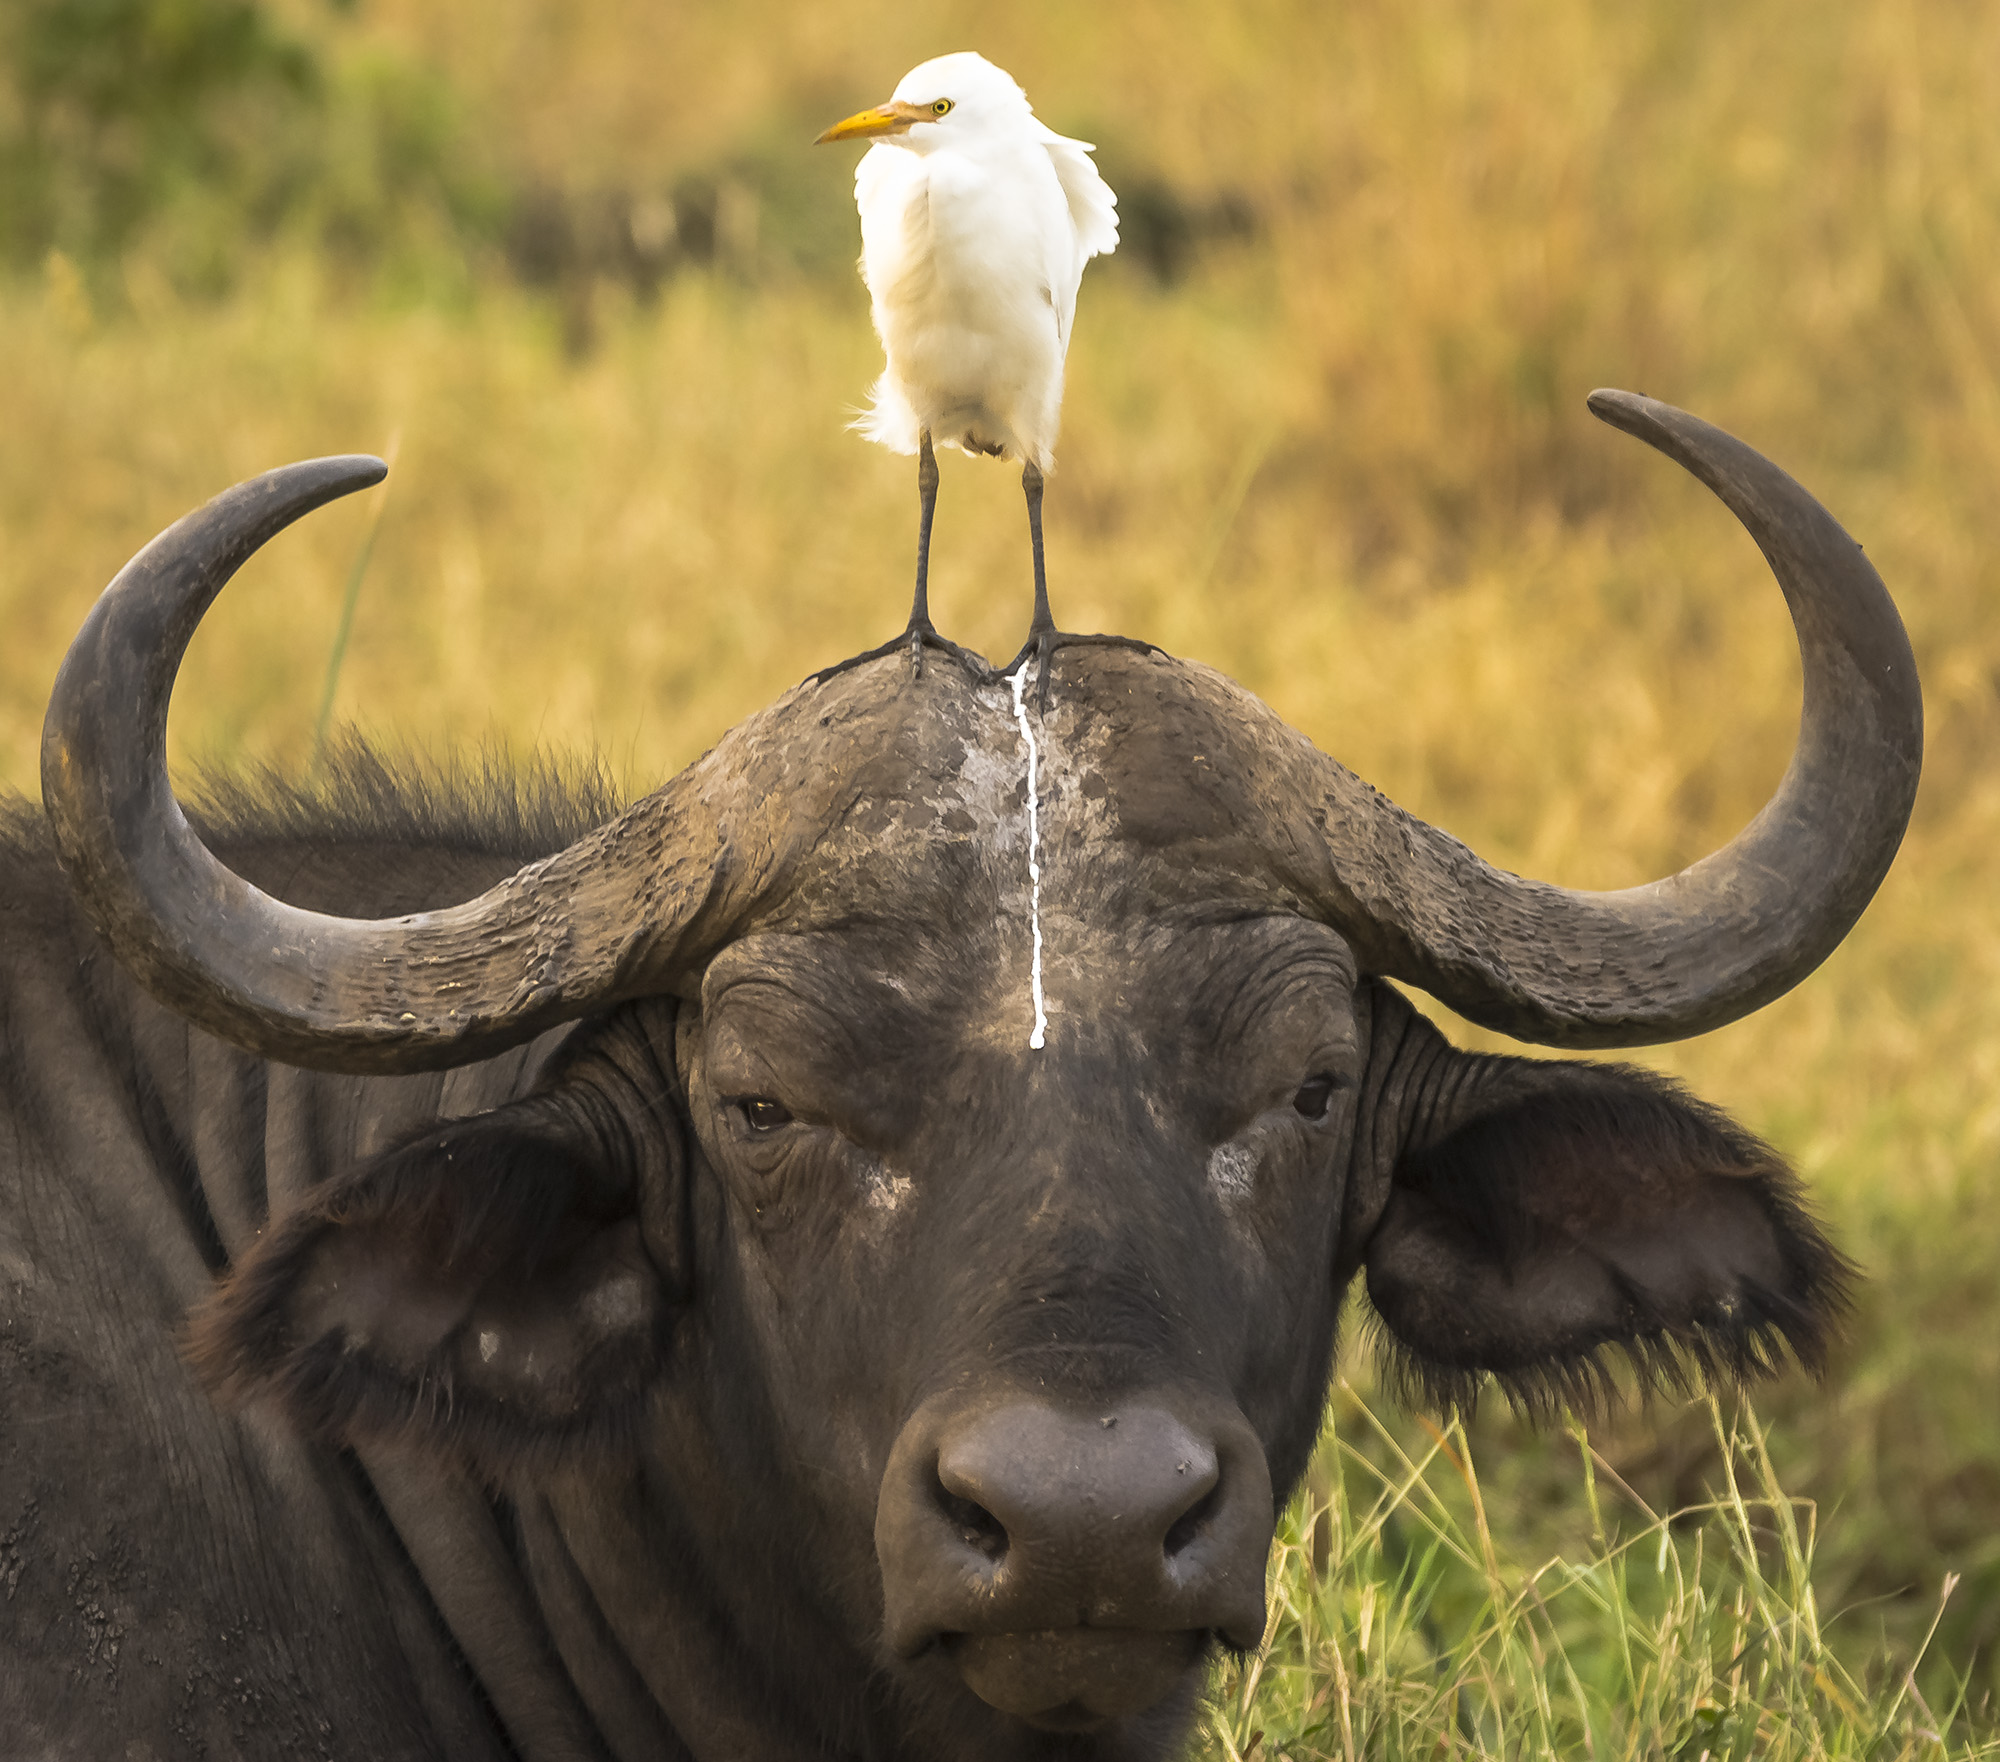 An unfortunate portrait of a cape buffalo and cattle egret in Meru National Park, Kenya. Photo by Tom Stables/The Comedy Wildlife Photography Awards.